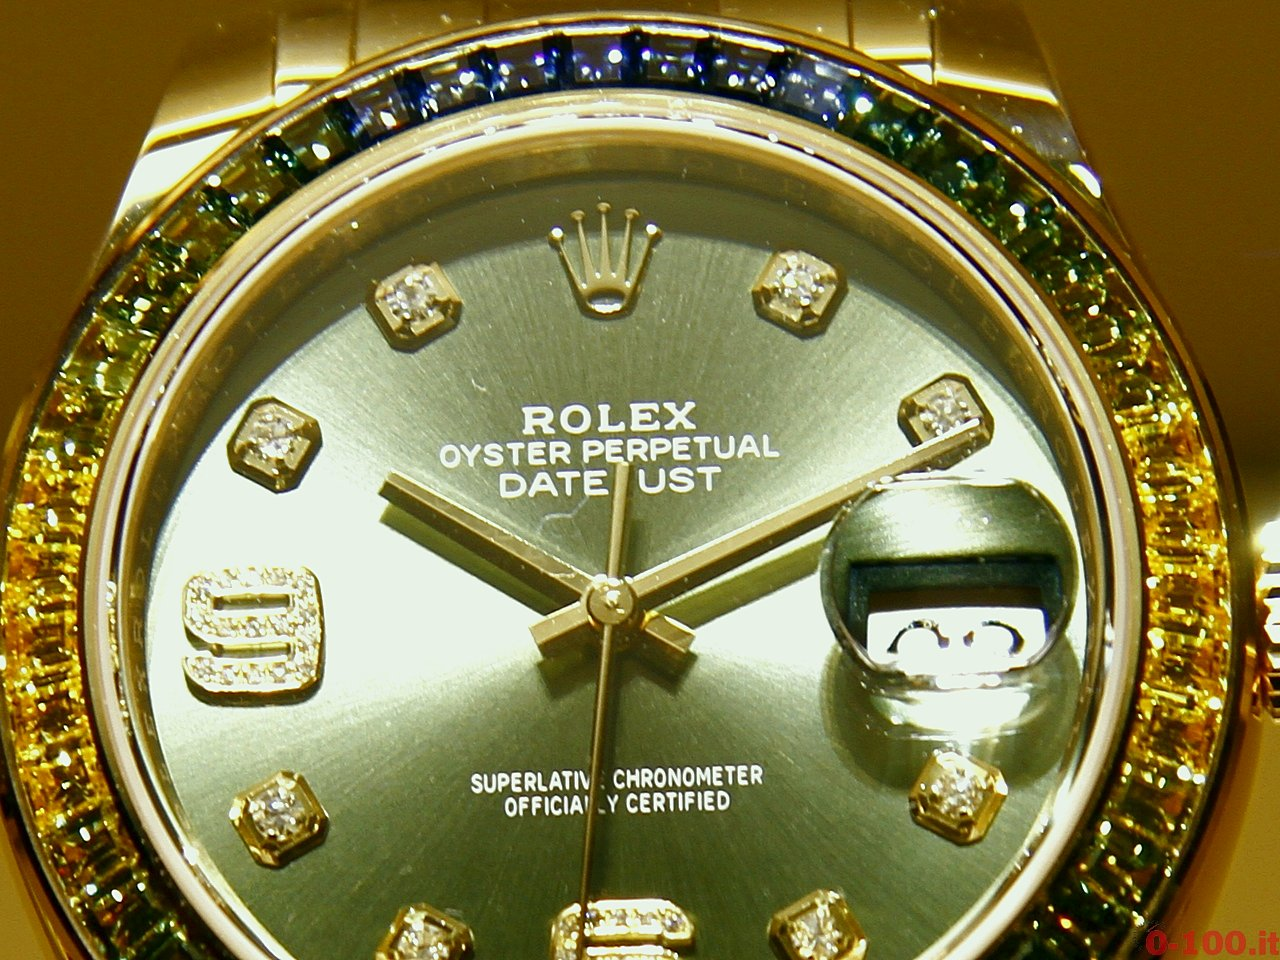 baselworld-2015_rolex-datejust-pearlmaster-39-0-100_4